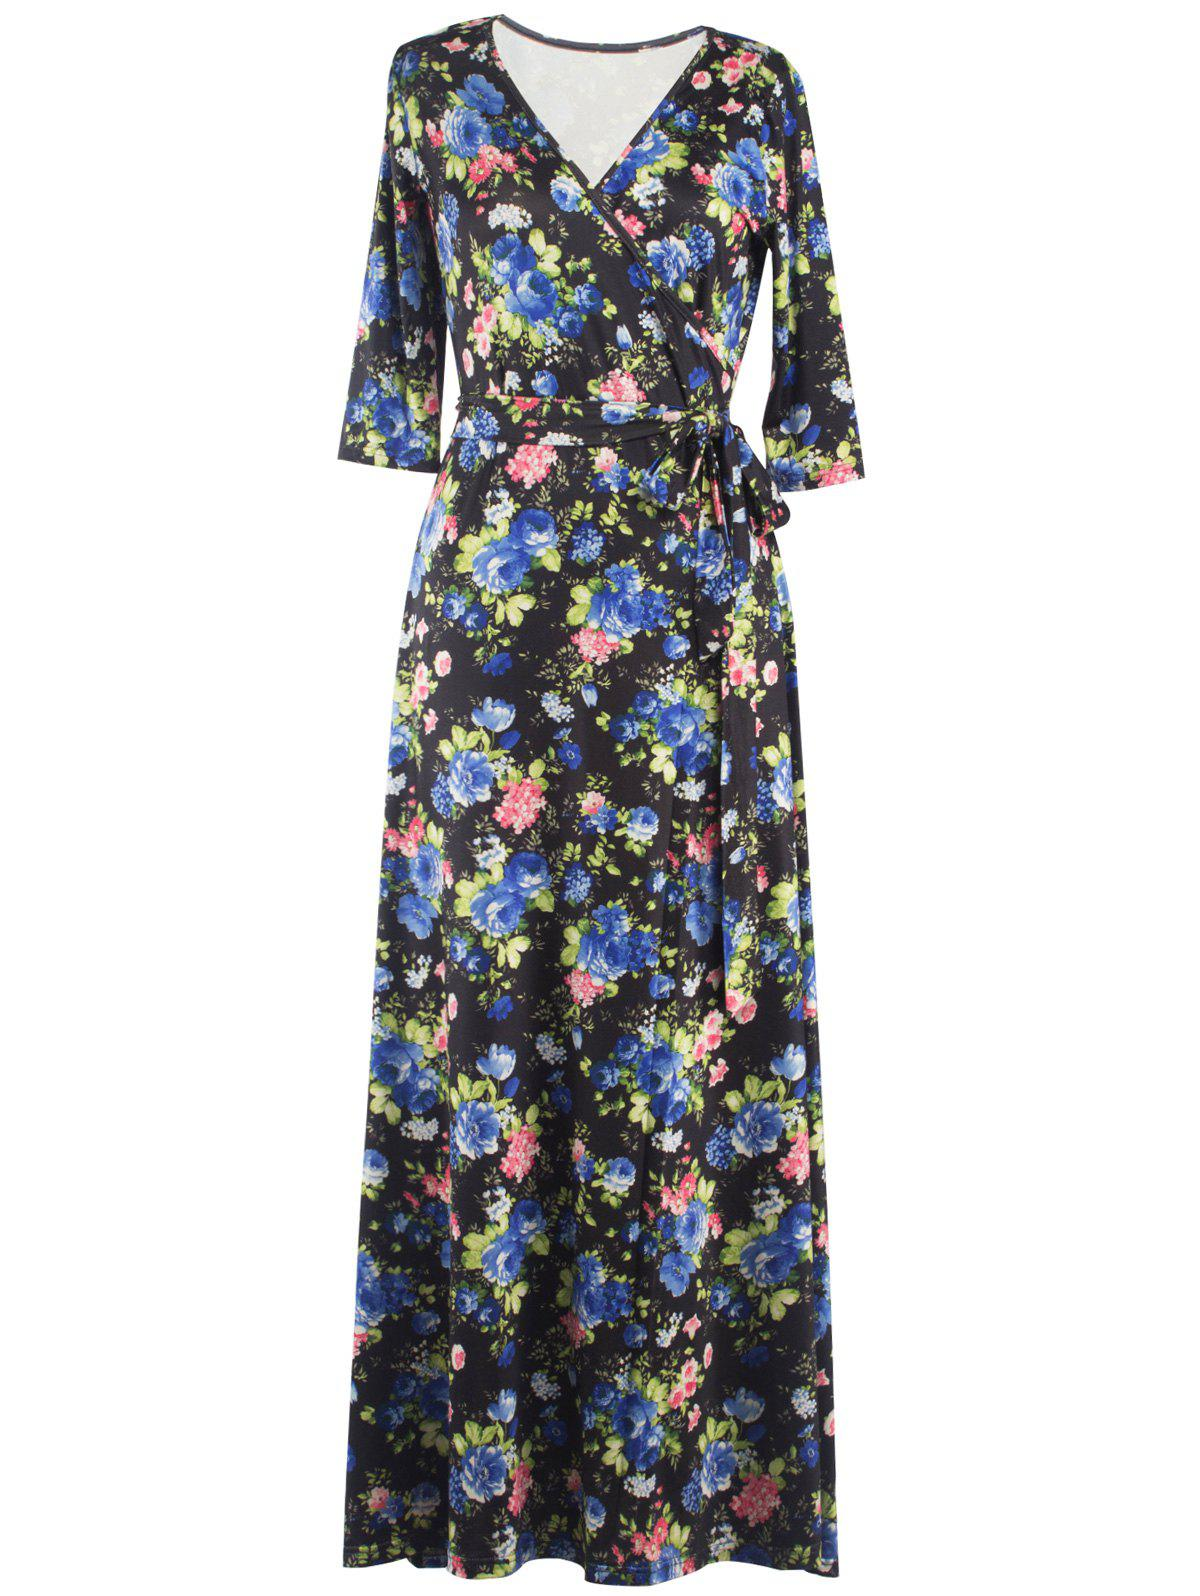 Shops Floral Print Tied Belted Surplice Maxi Dress